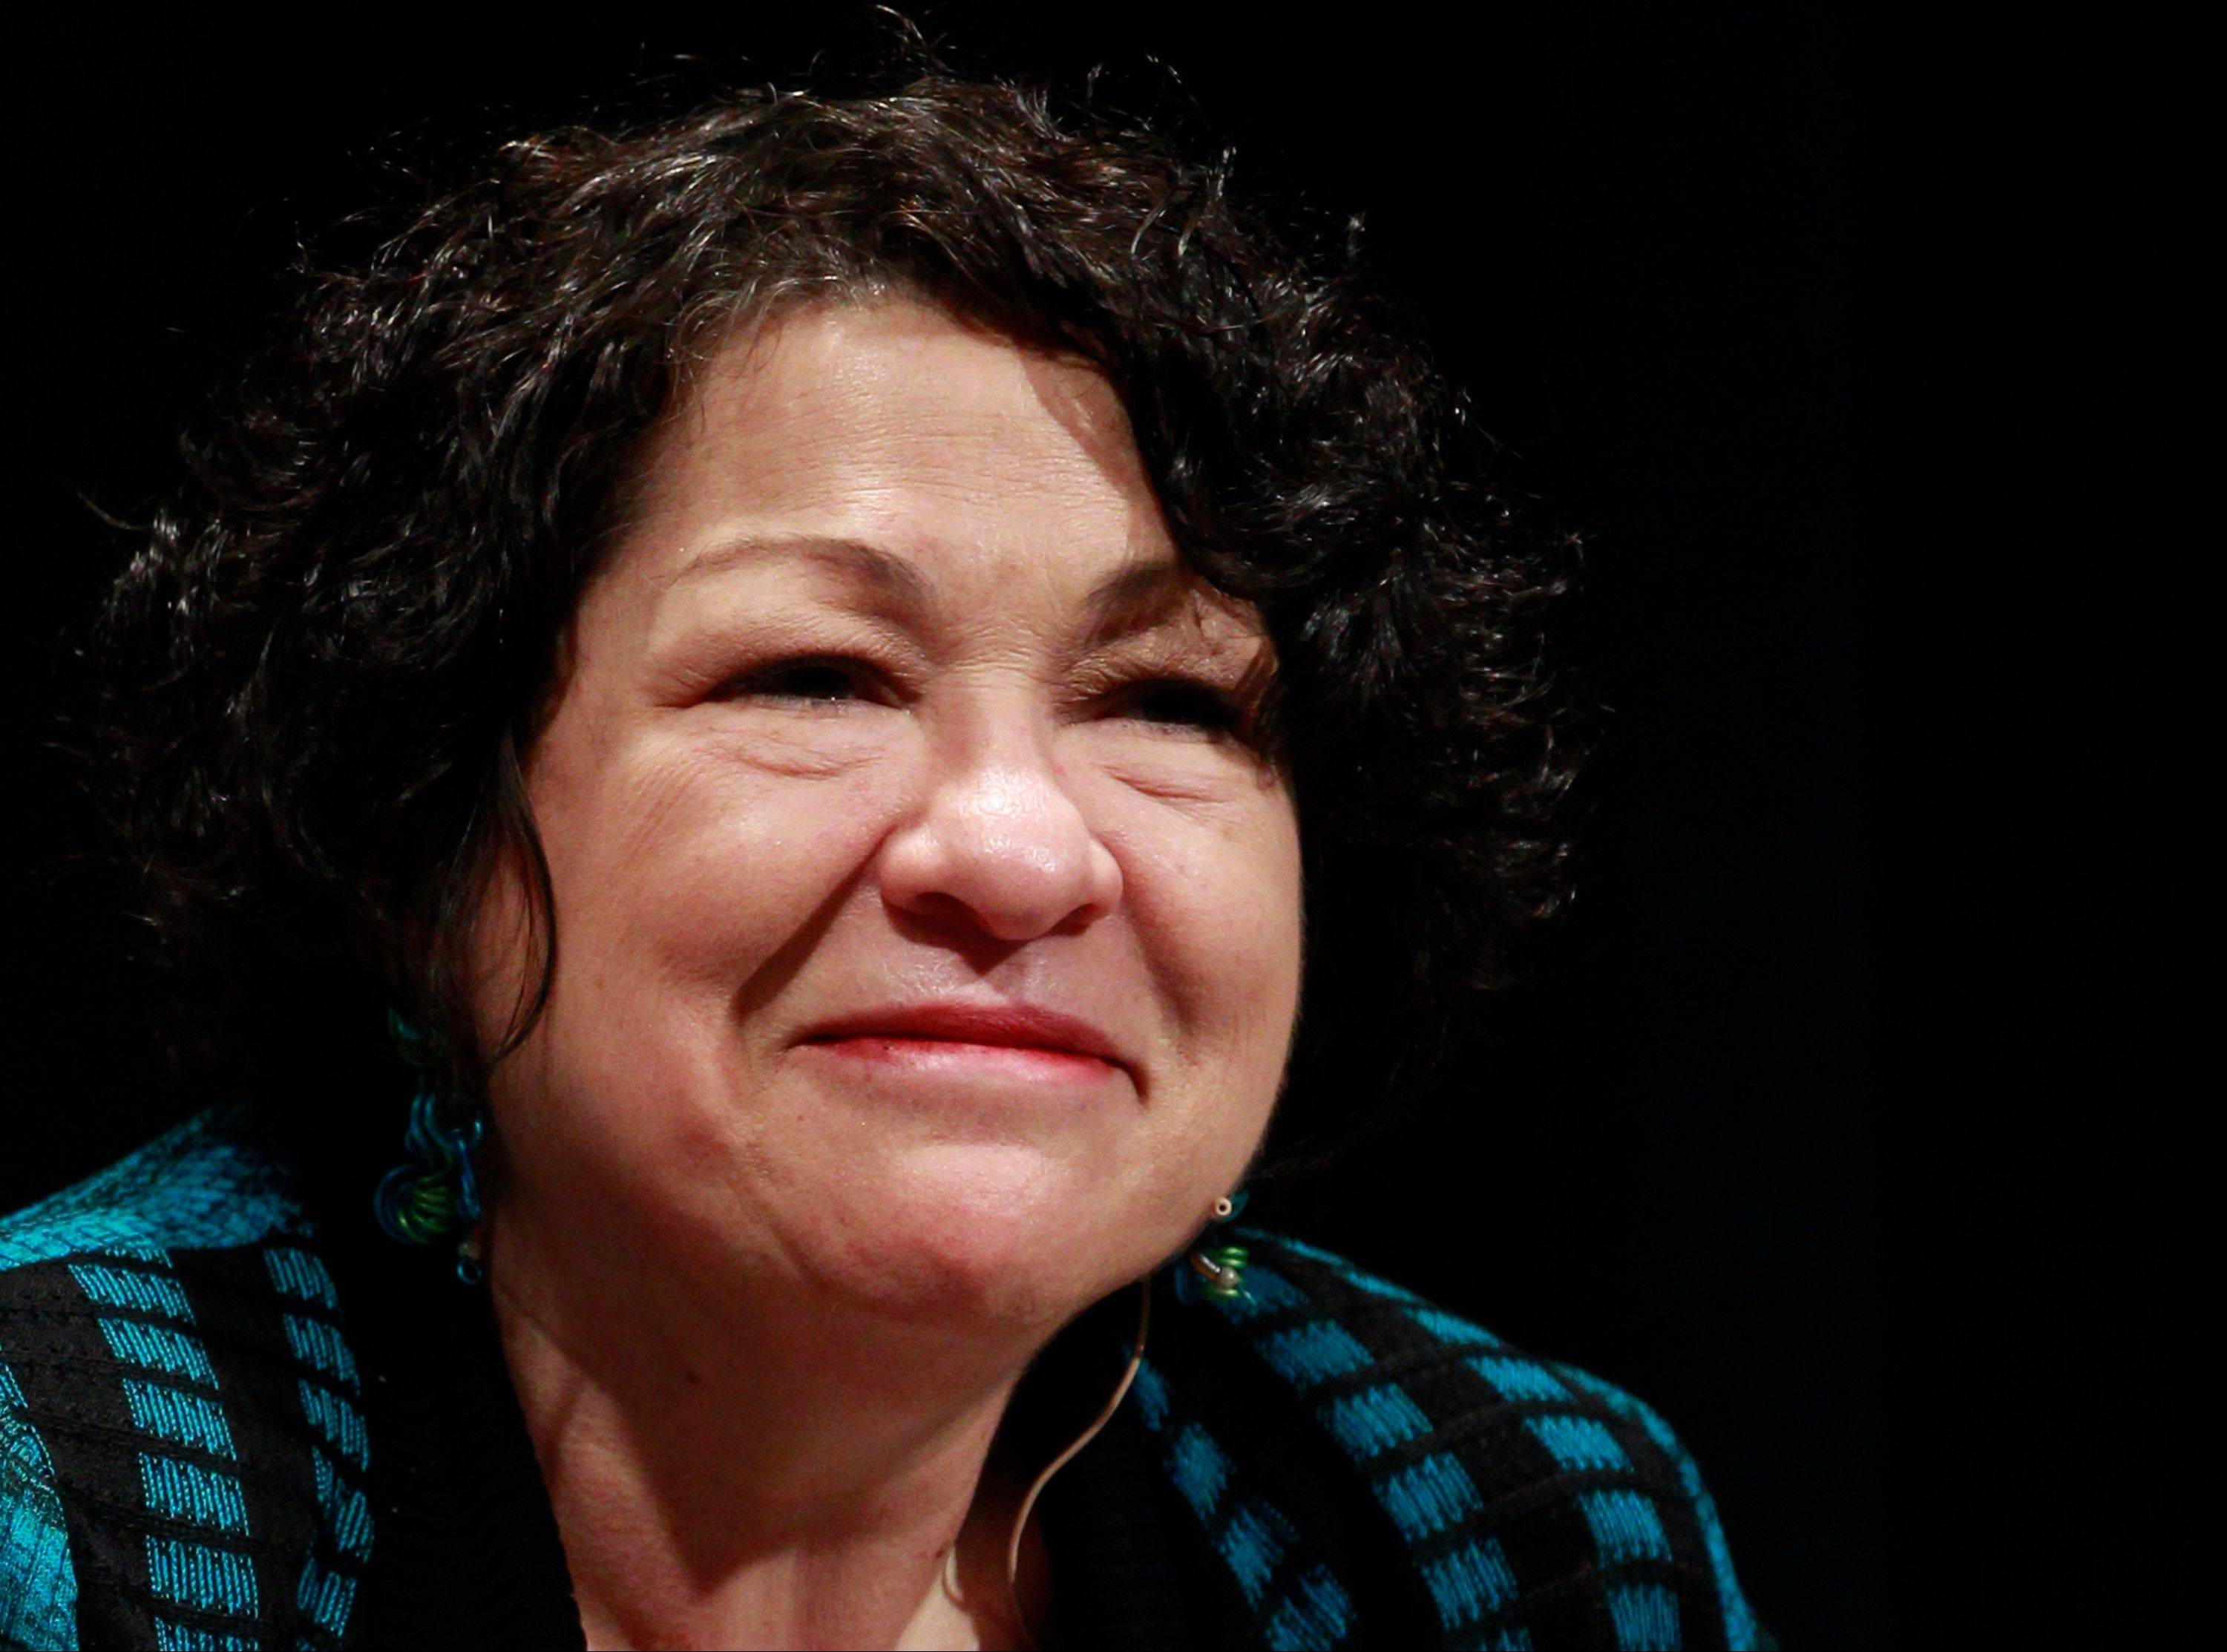 Supreme Court Justice Sonia Sotomayor on Tuesday evening blocked implementation of portions of President Barack Obama's health care law that would have forced some religion-affiliated organizations to provide health insurance for employees that includes birth control.